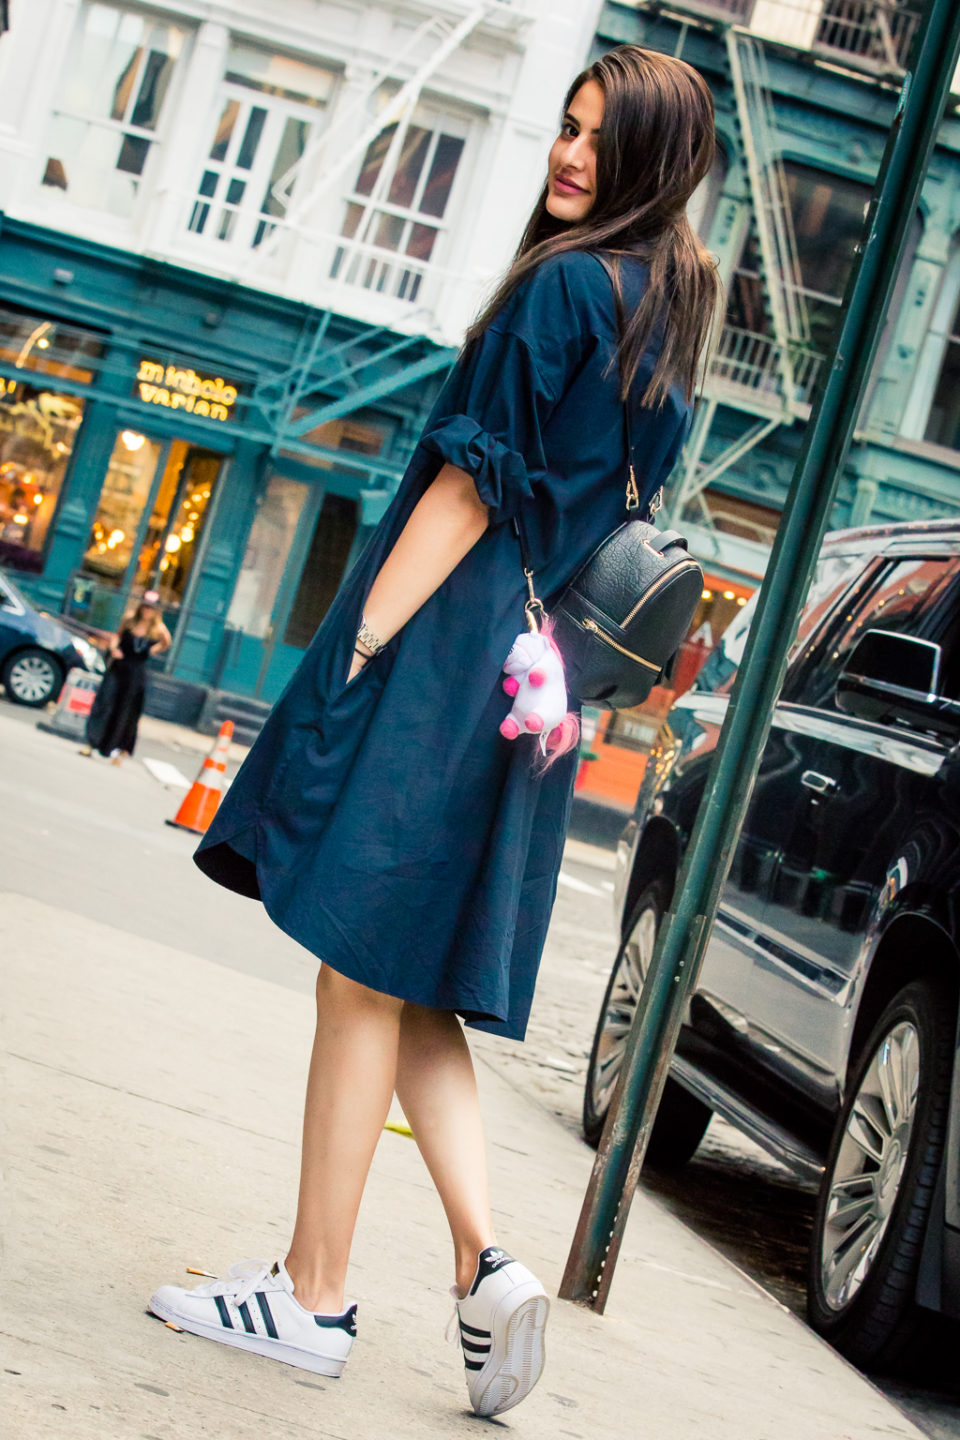 new-york-city-street-style-53